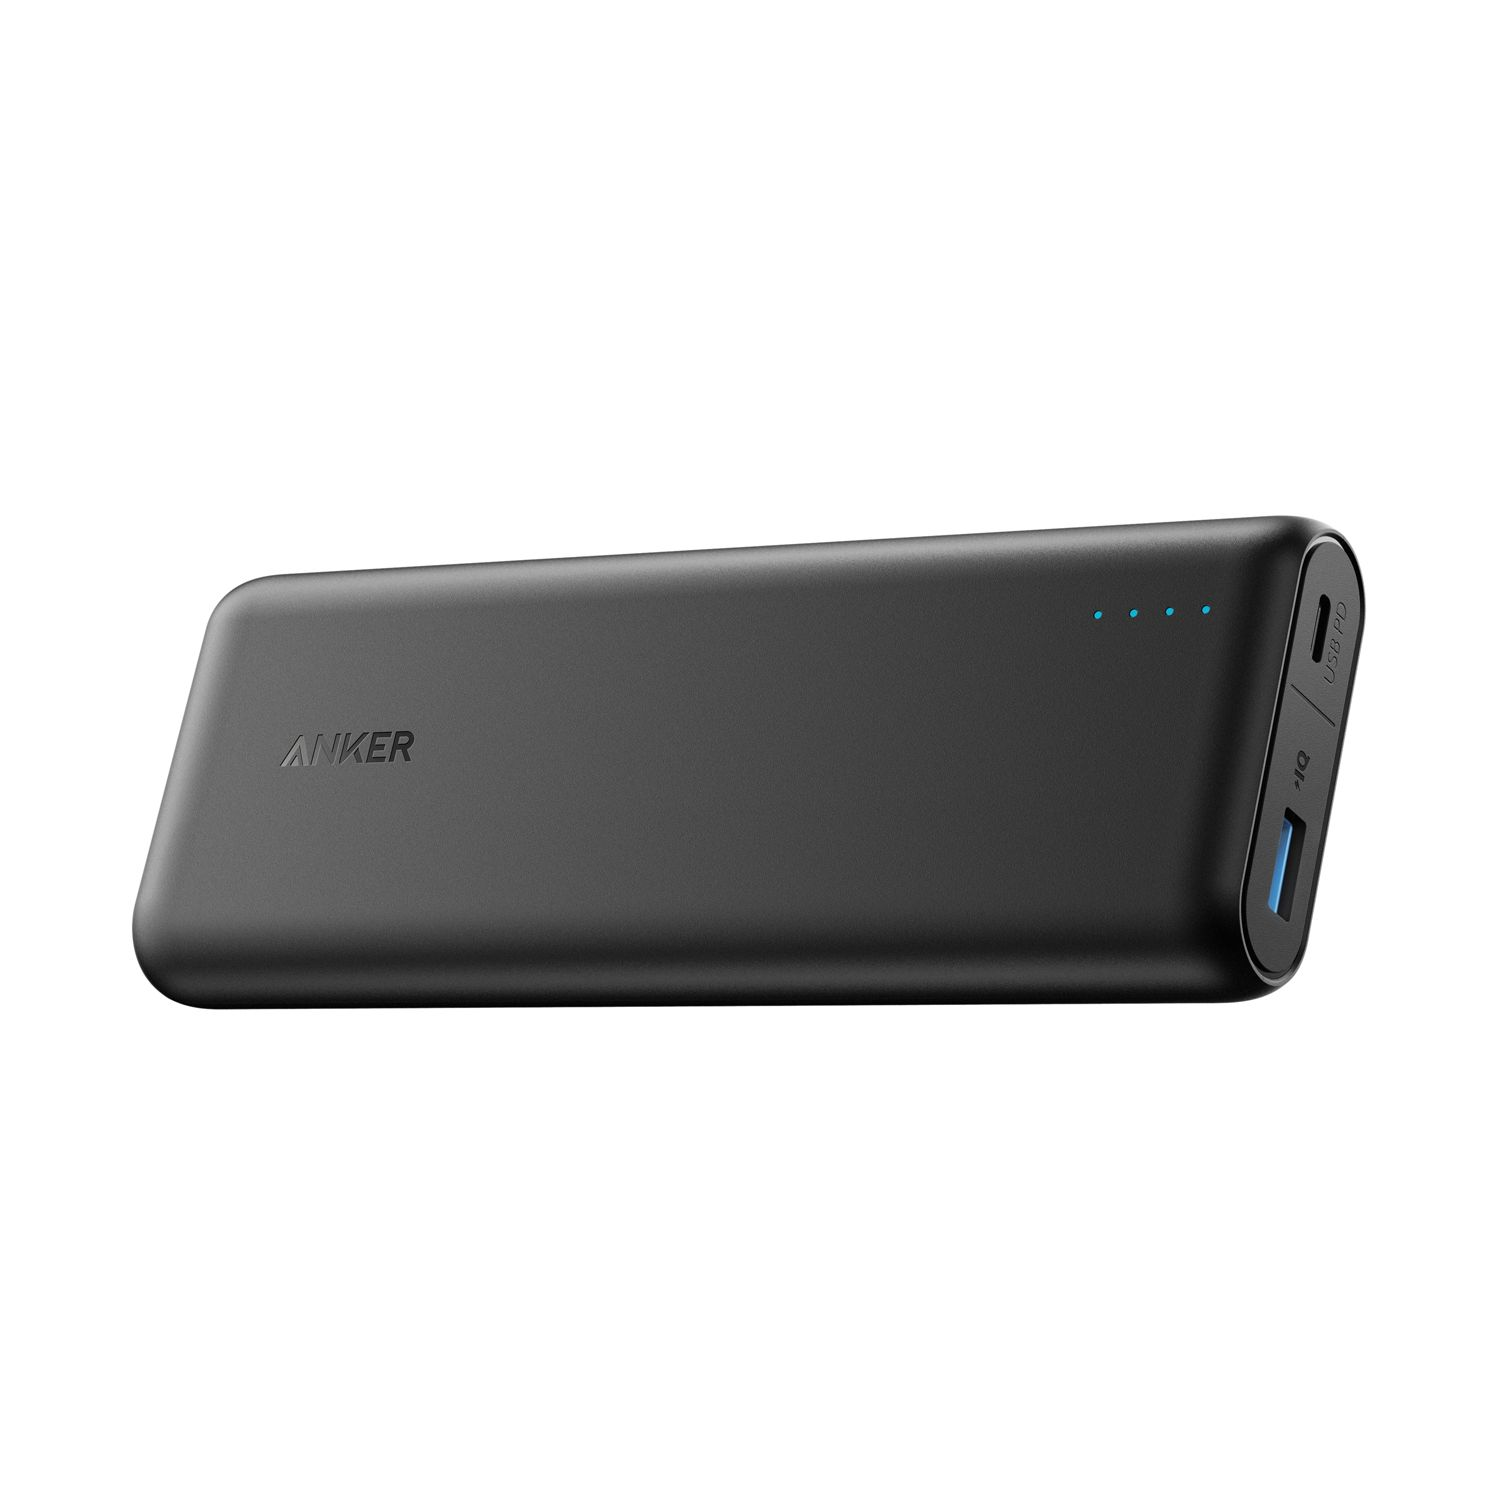 Image of Anker powerbank PowerCore Speed 20000 mAh USB-C PD